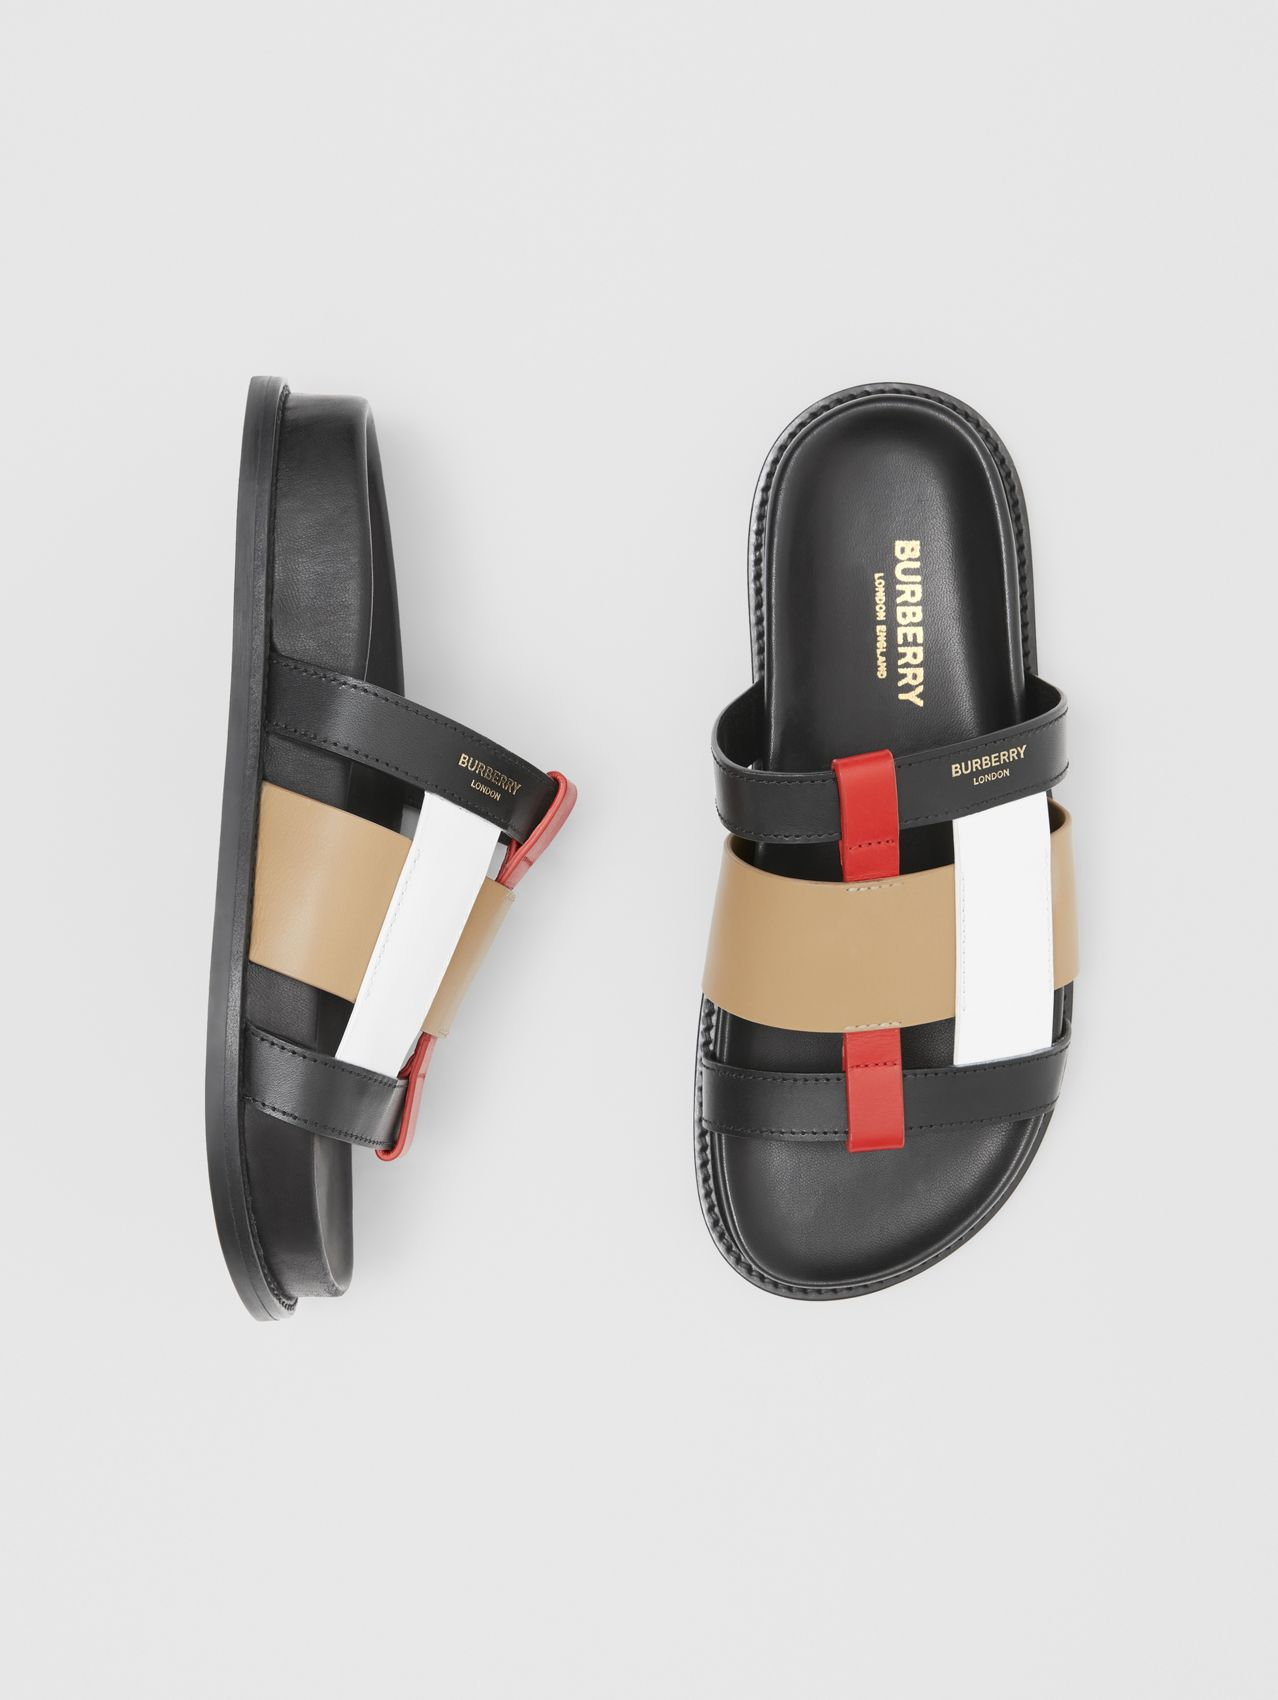 Leder-Slides in Colour-Blocking-Optik (Schwarz/vintage-beige)